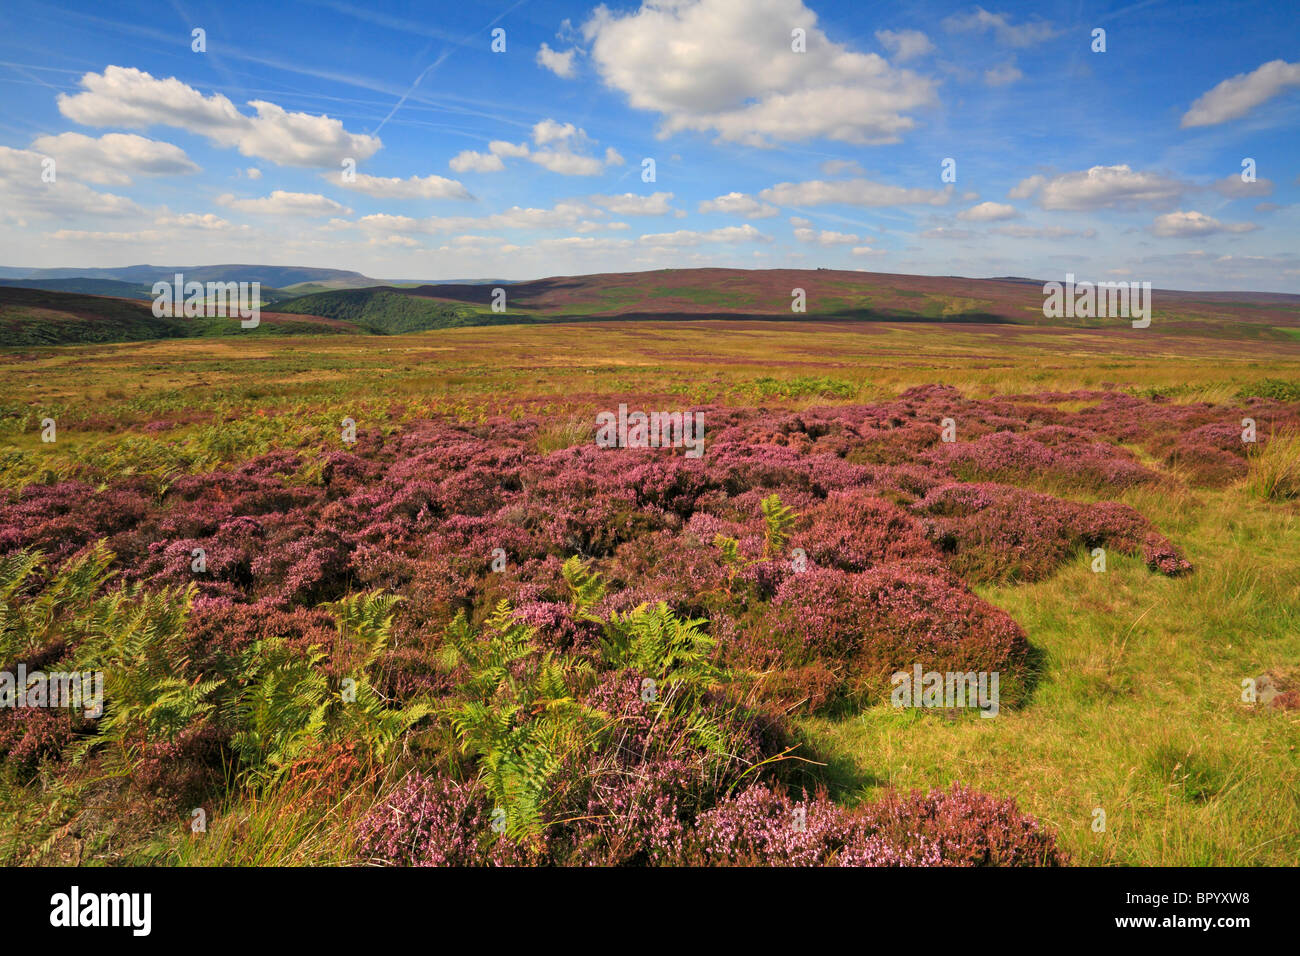 Heather on Moscar Moor and distant Derwent Edge, Derbyshire, Peak District National Park, England, UK. - Stock Image